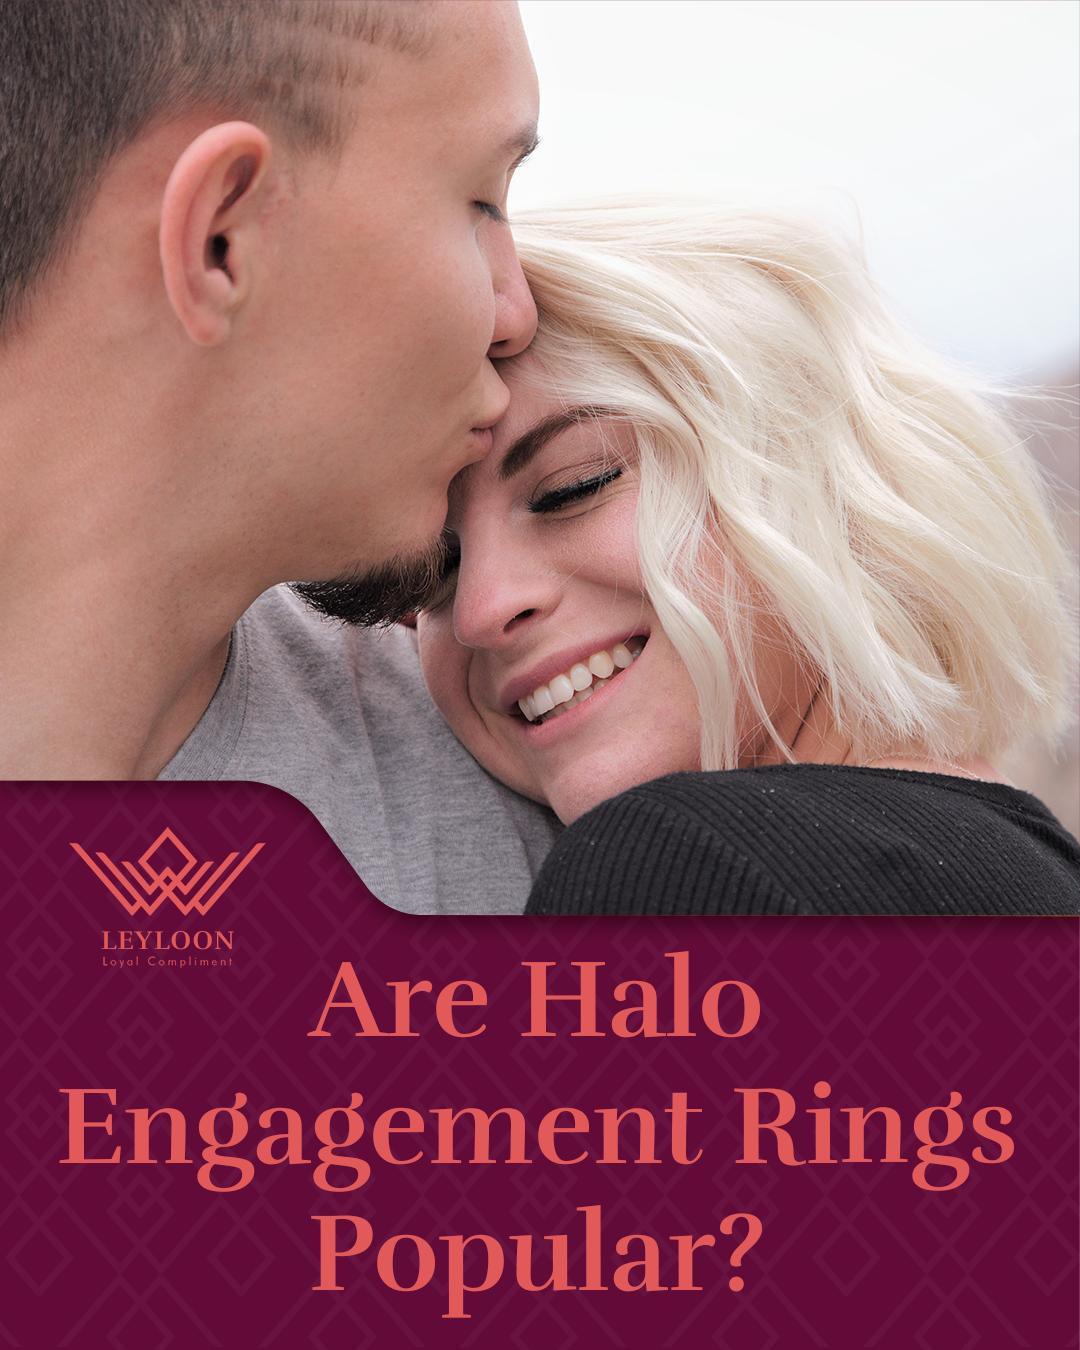 Are Halo Engagement Rings Popular?